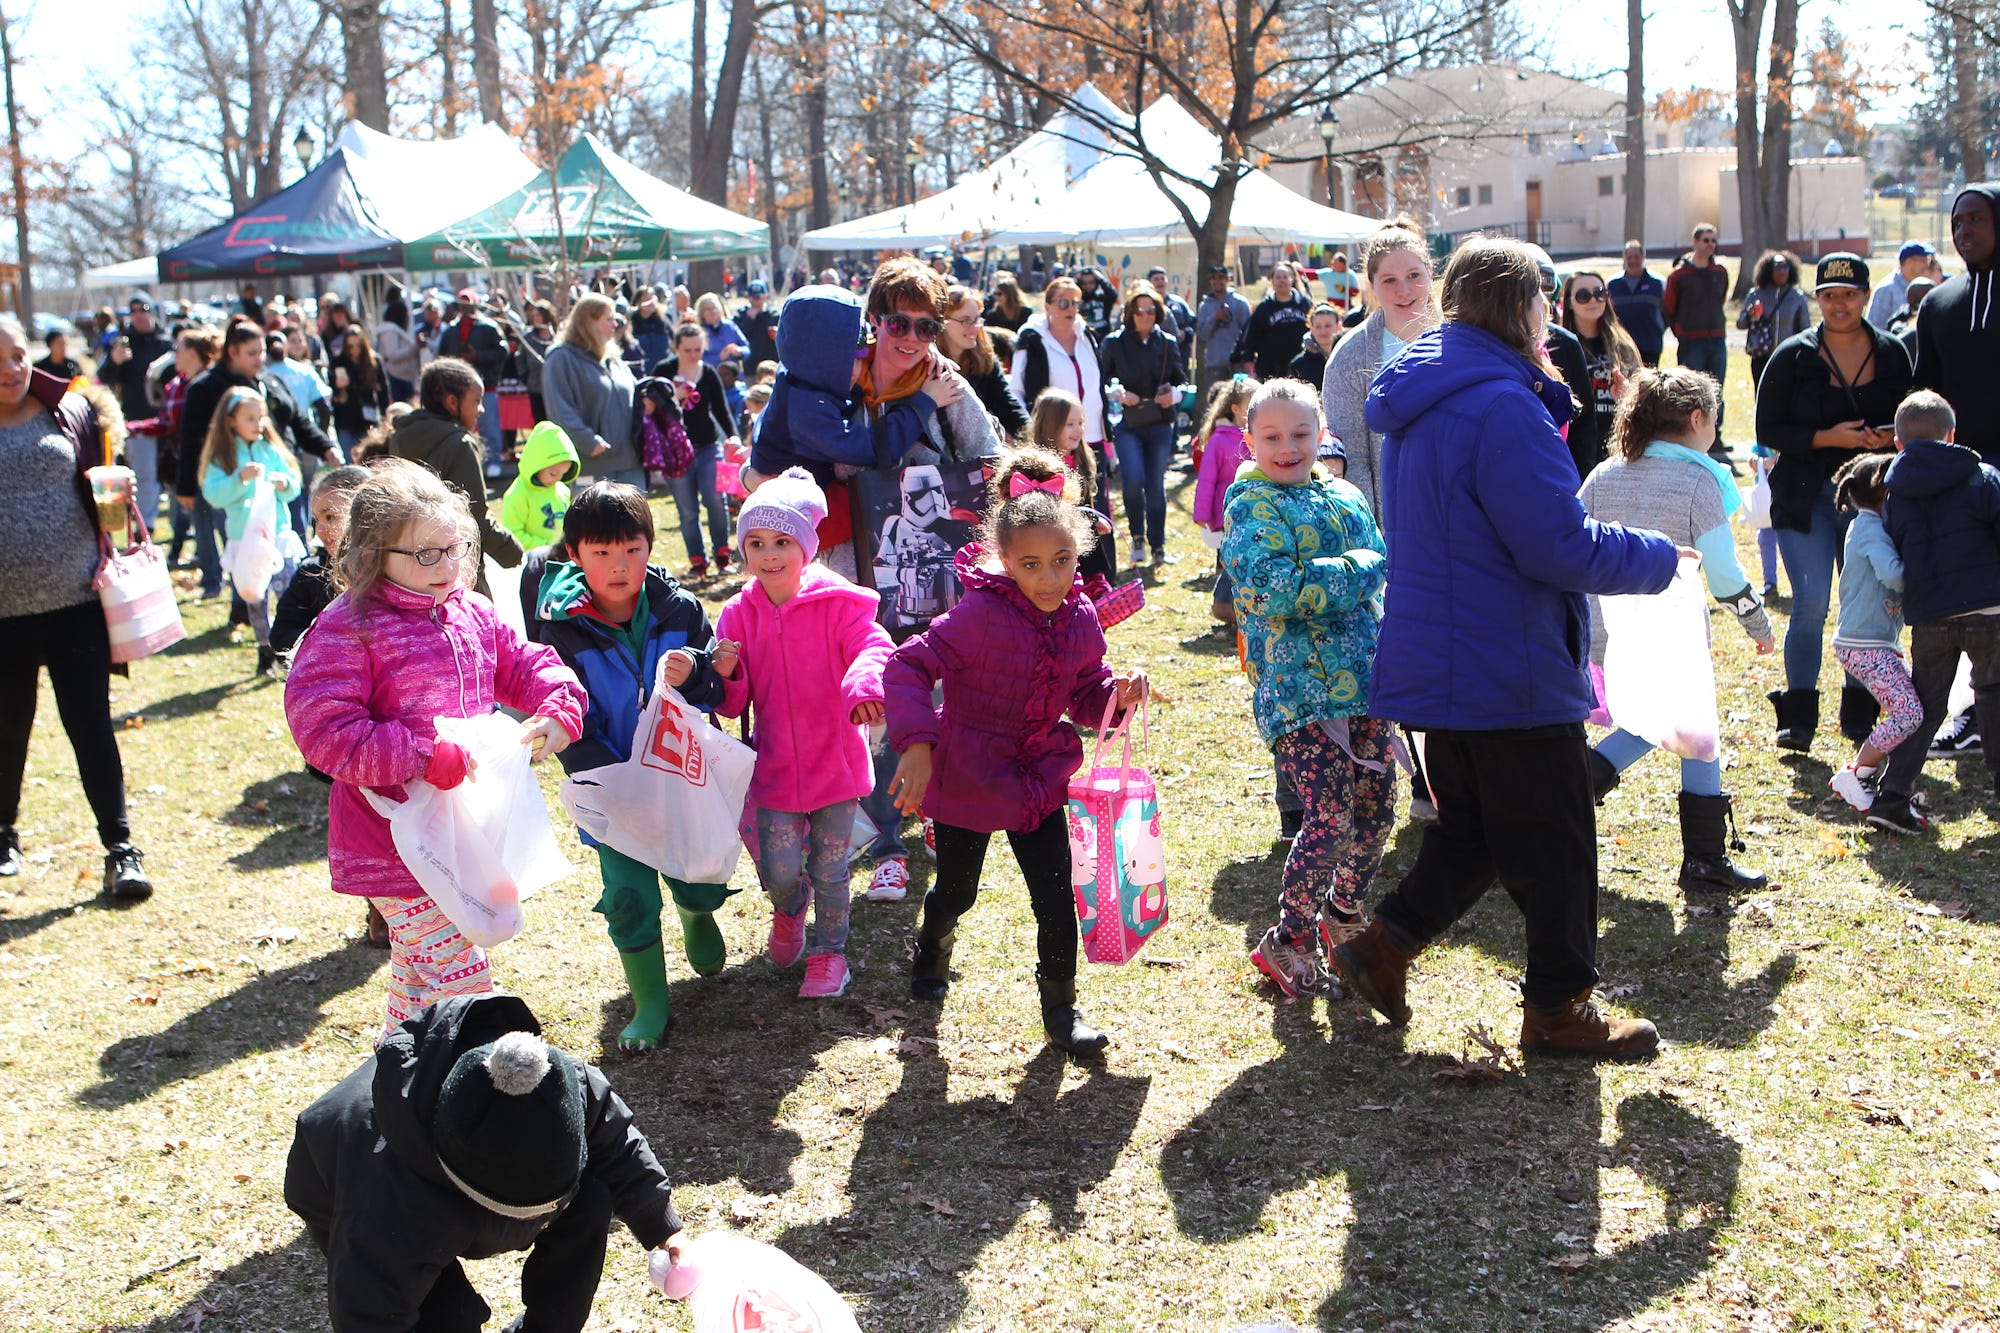 Find the nearest Easter egg hunts and related events in the Binghamton region this week